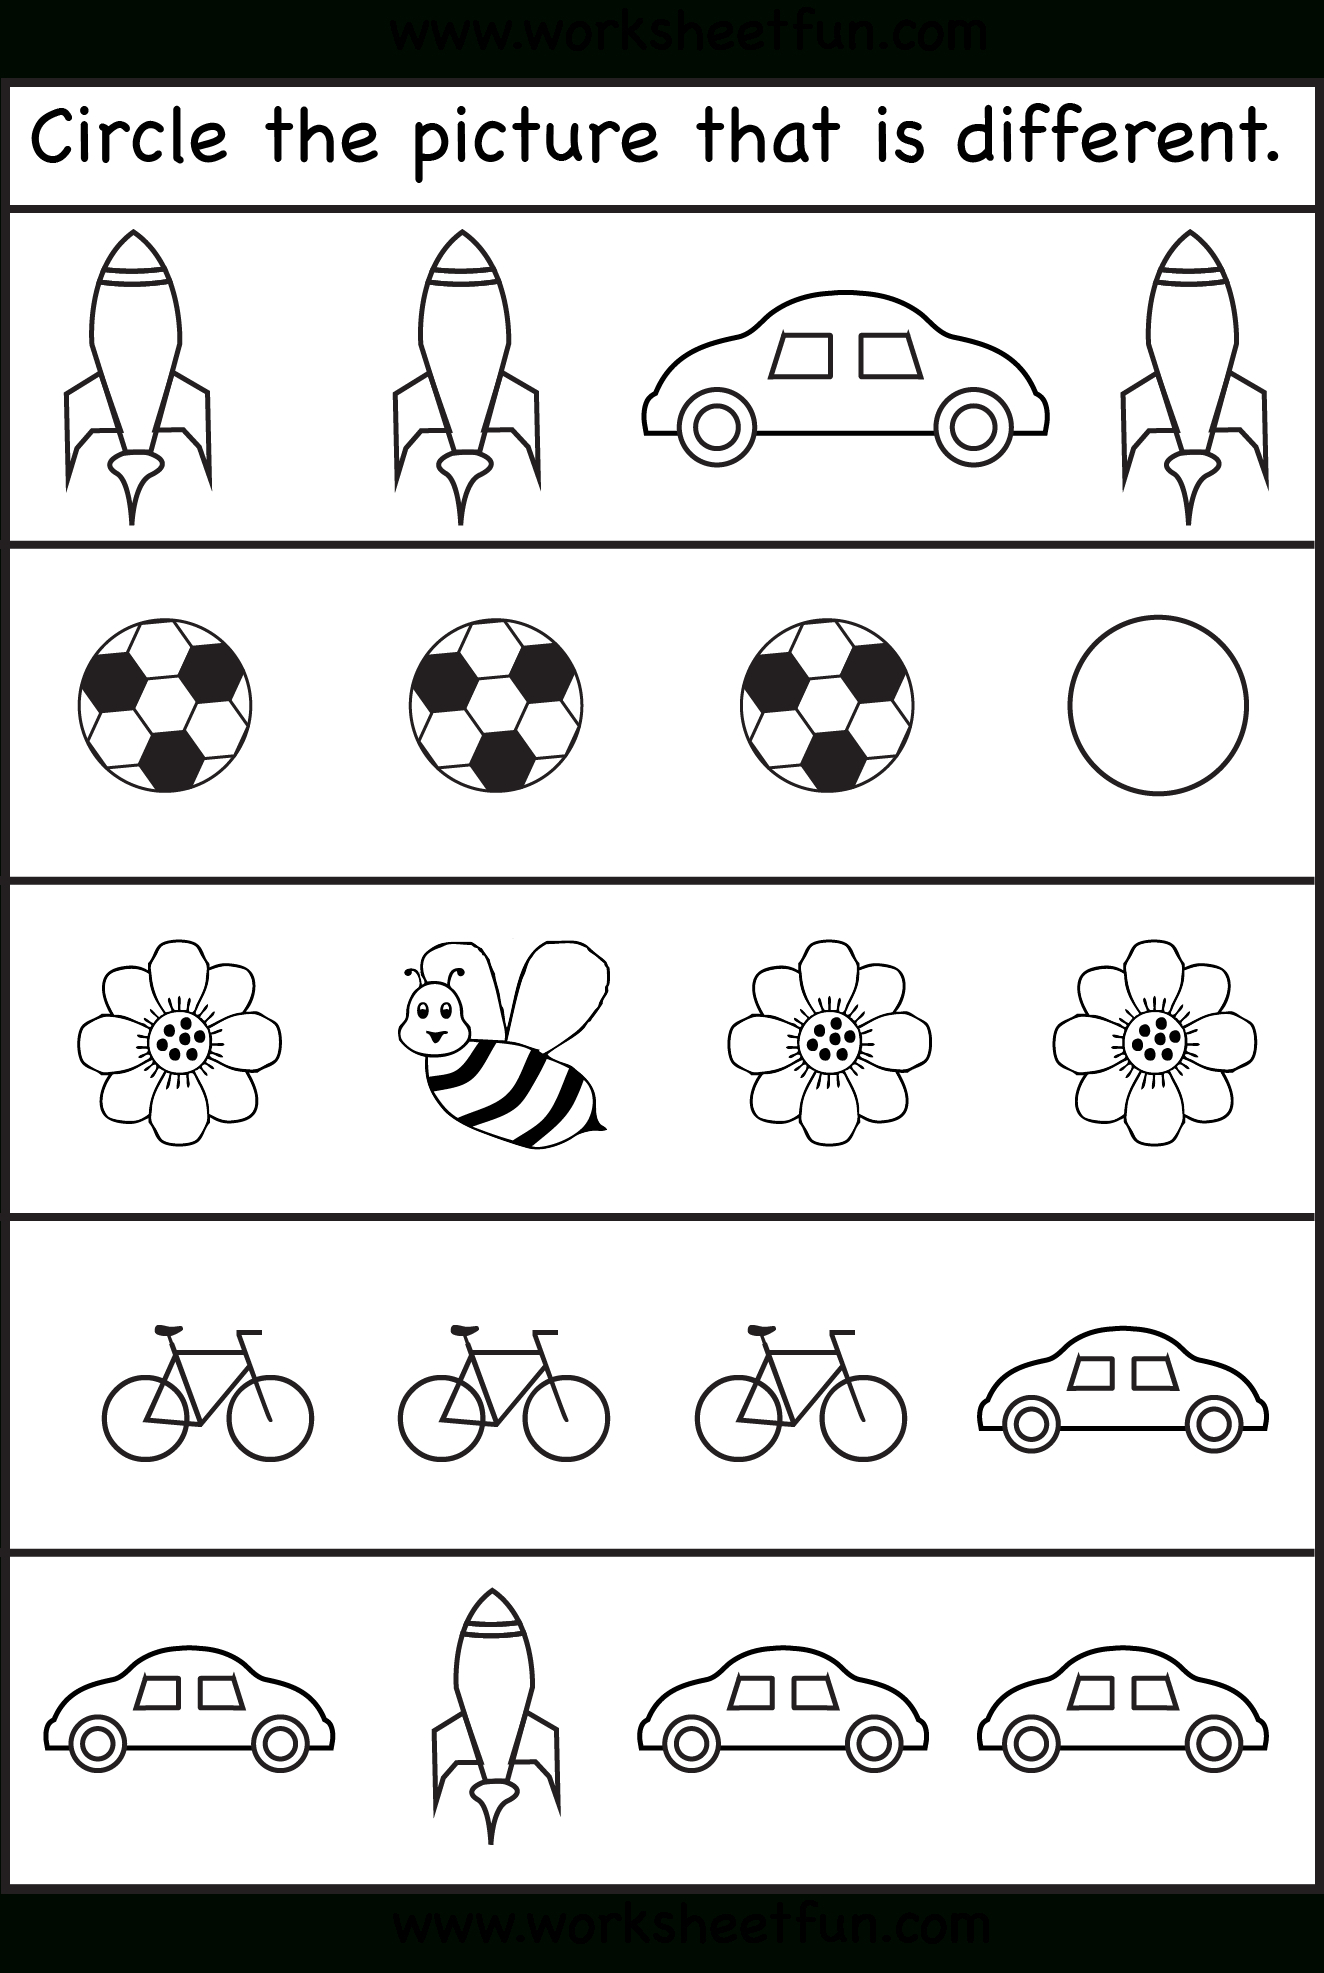 Circle The Picture That Is Different - 4 Worksheets | Preschool Work | Free Printable Toddler Learning Worksheets